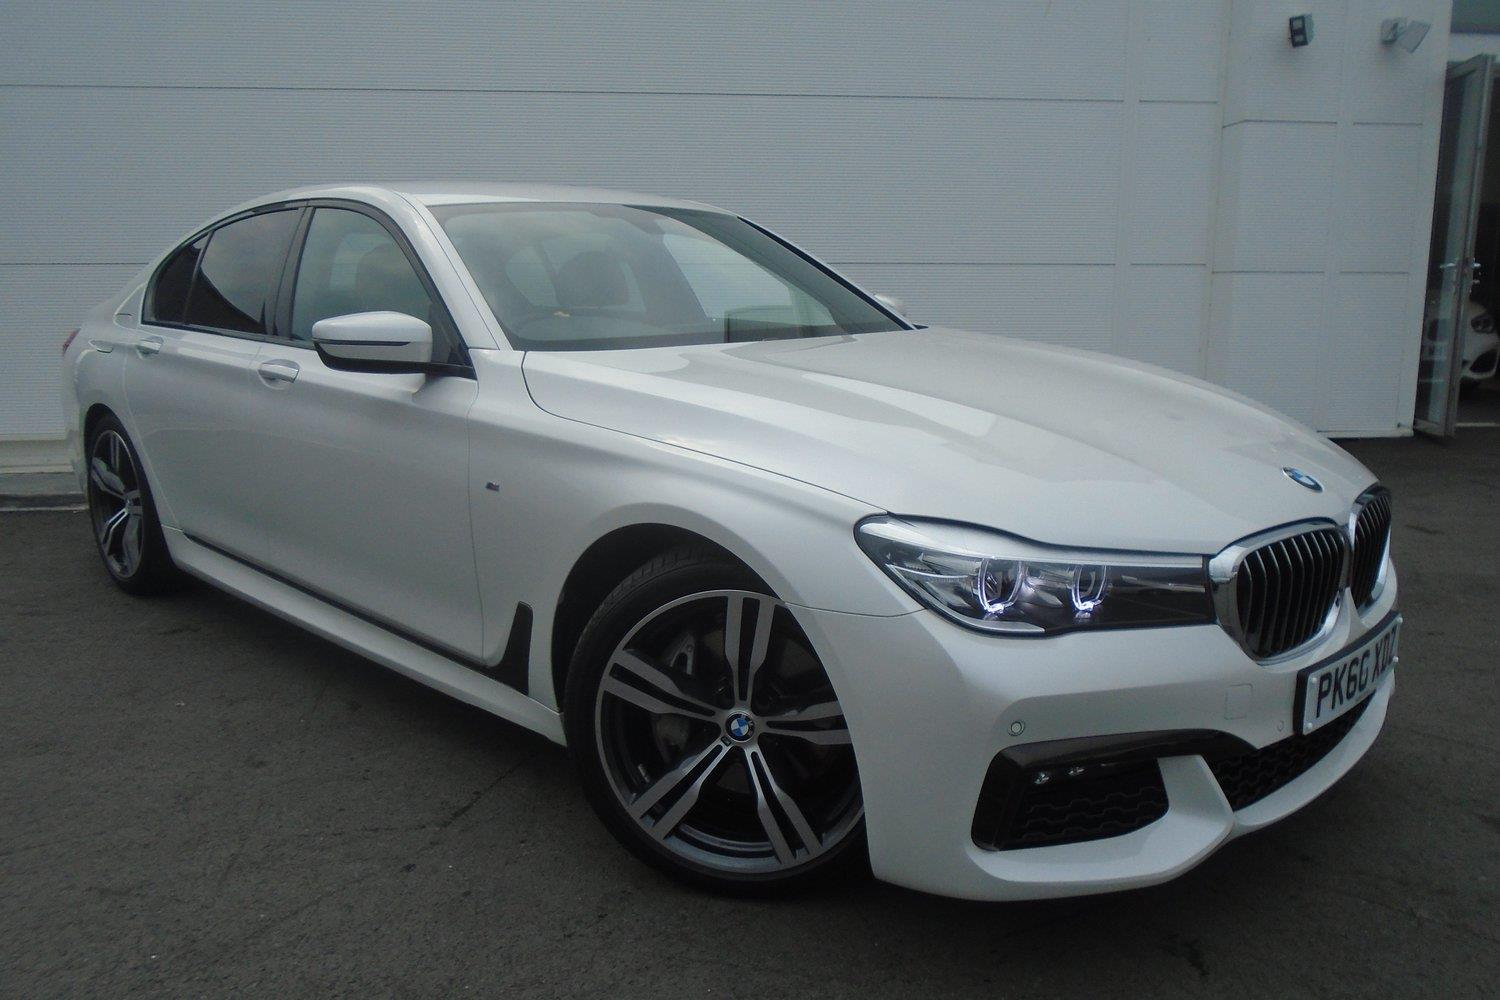 BMW 7 Series Saloon PK66XDZ - Image 1